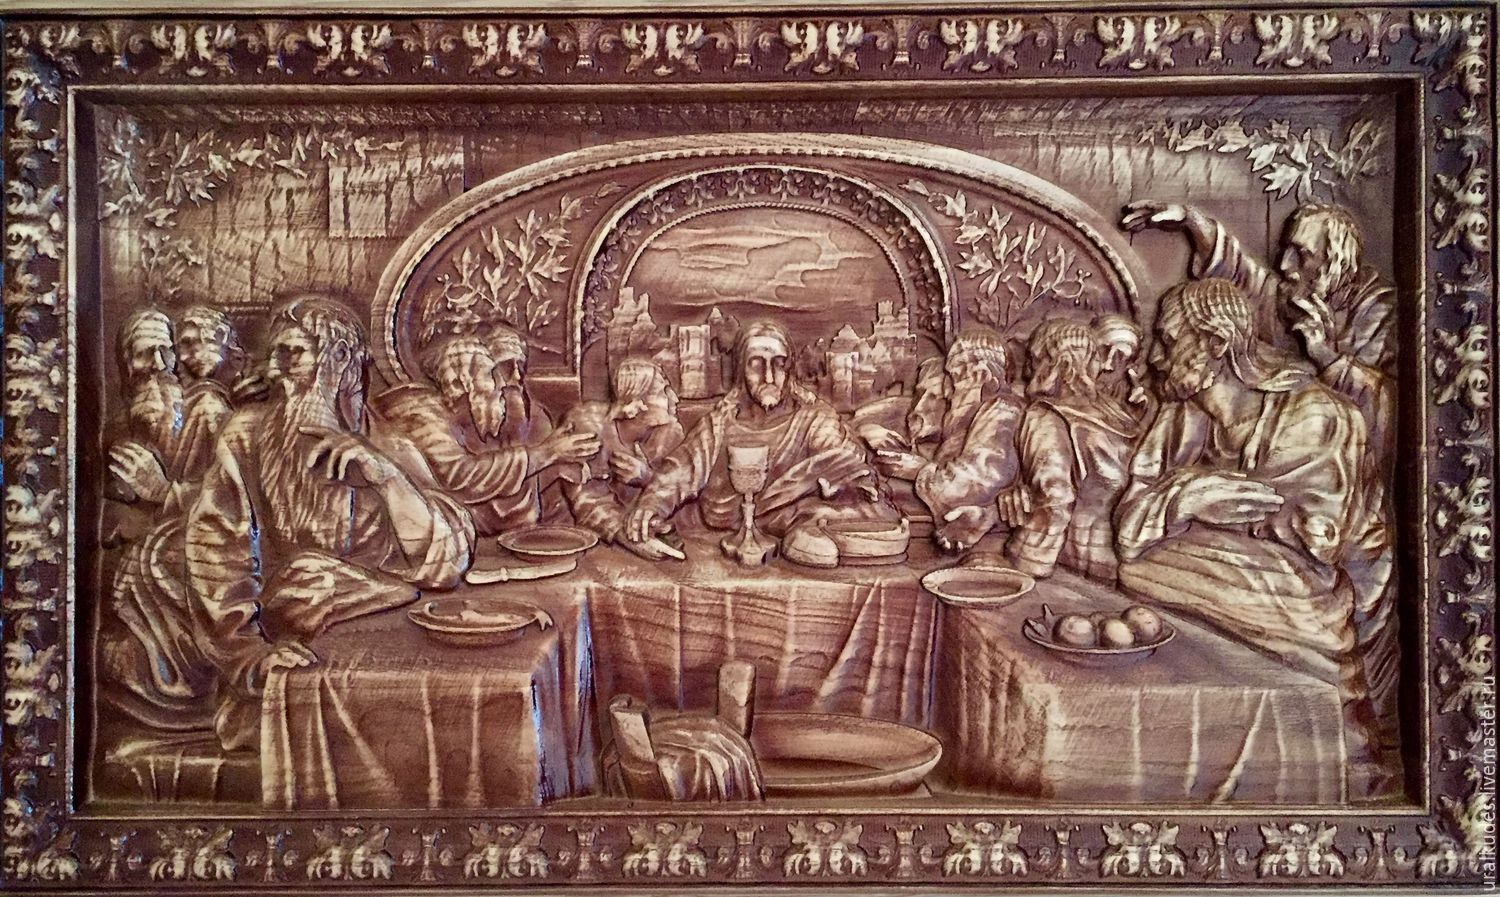 Amazon olive wood last supper plaque hand made in bethlehem